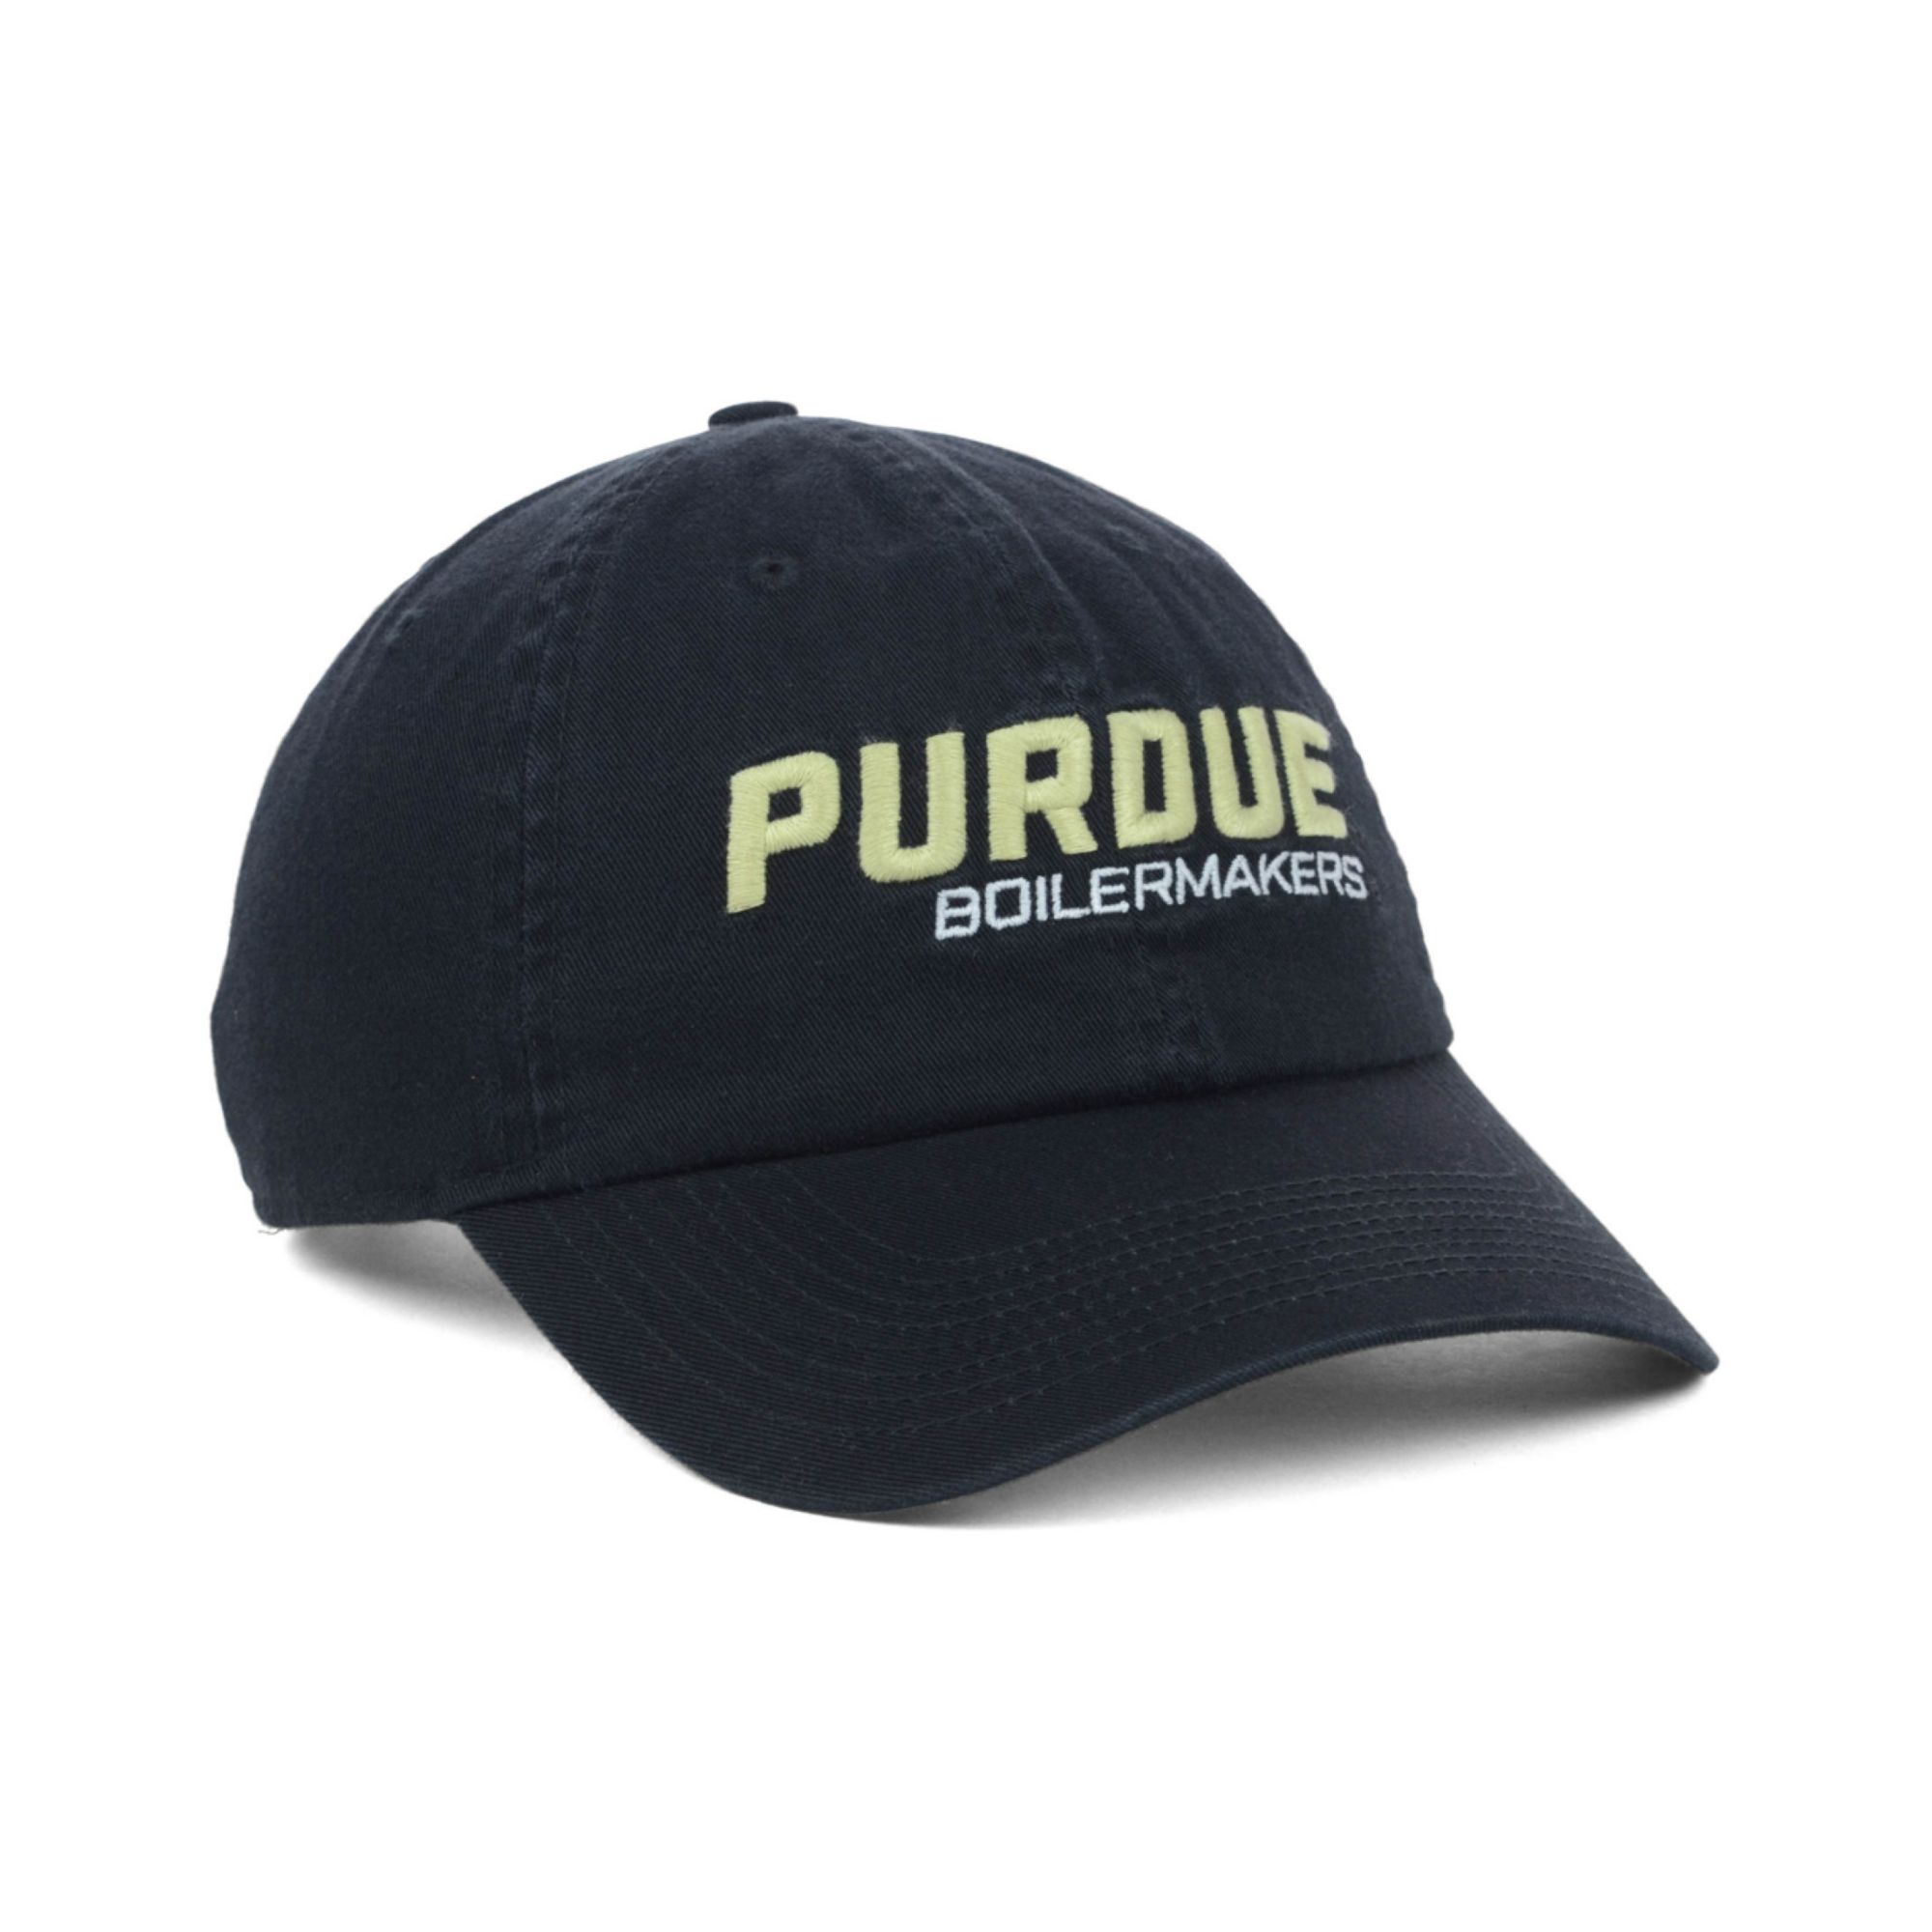 13072c11467 Lyst - Nike Purdue Boilermakers Heritage 86 Campus Cap in Black for Men